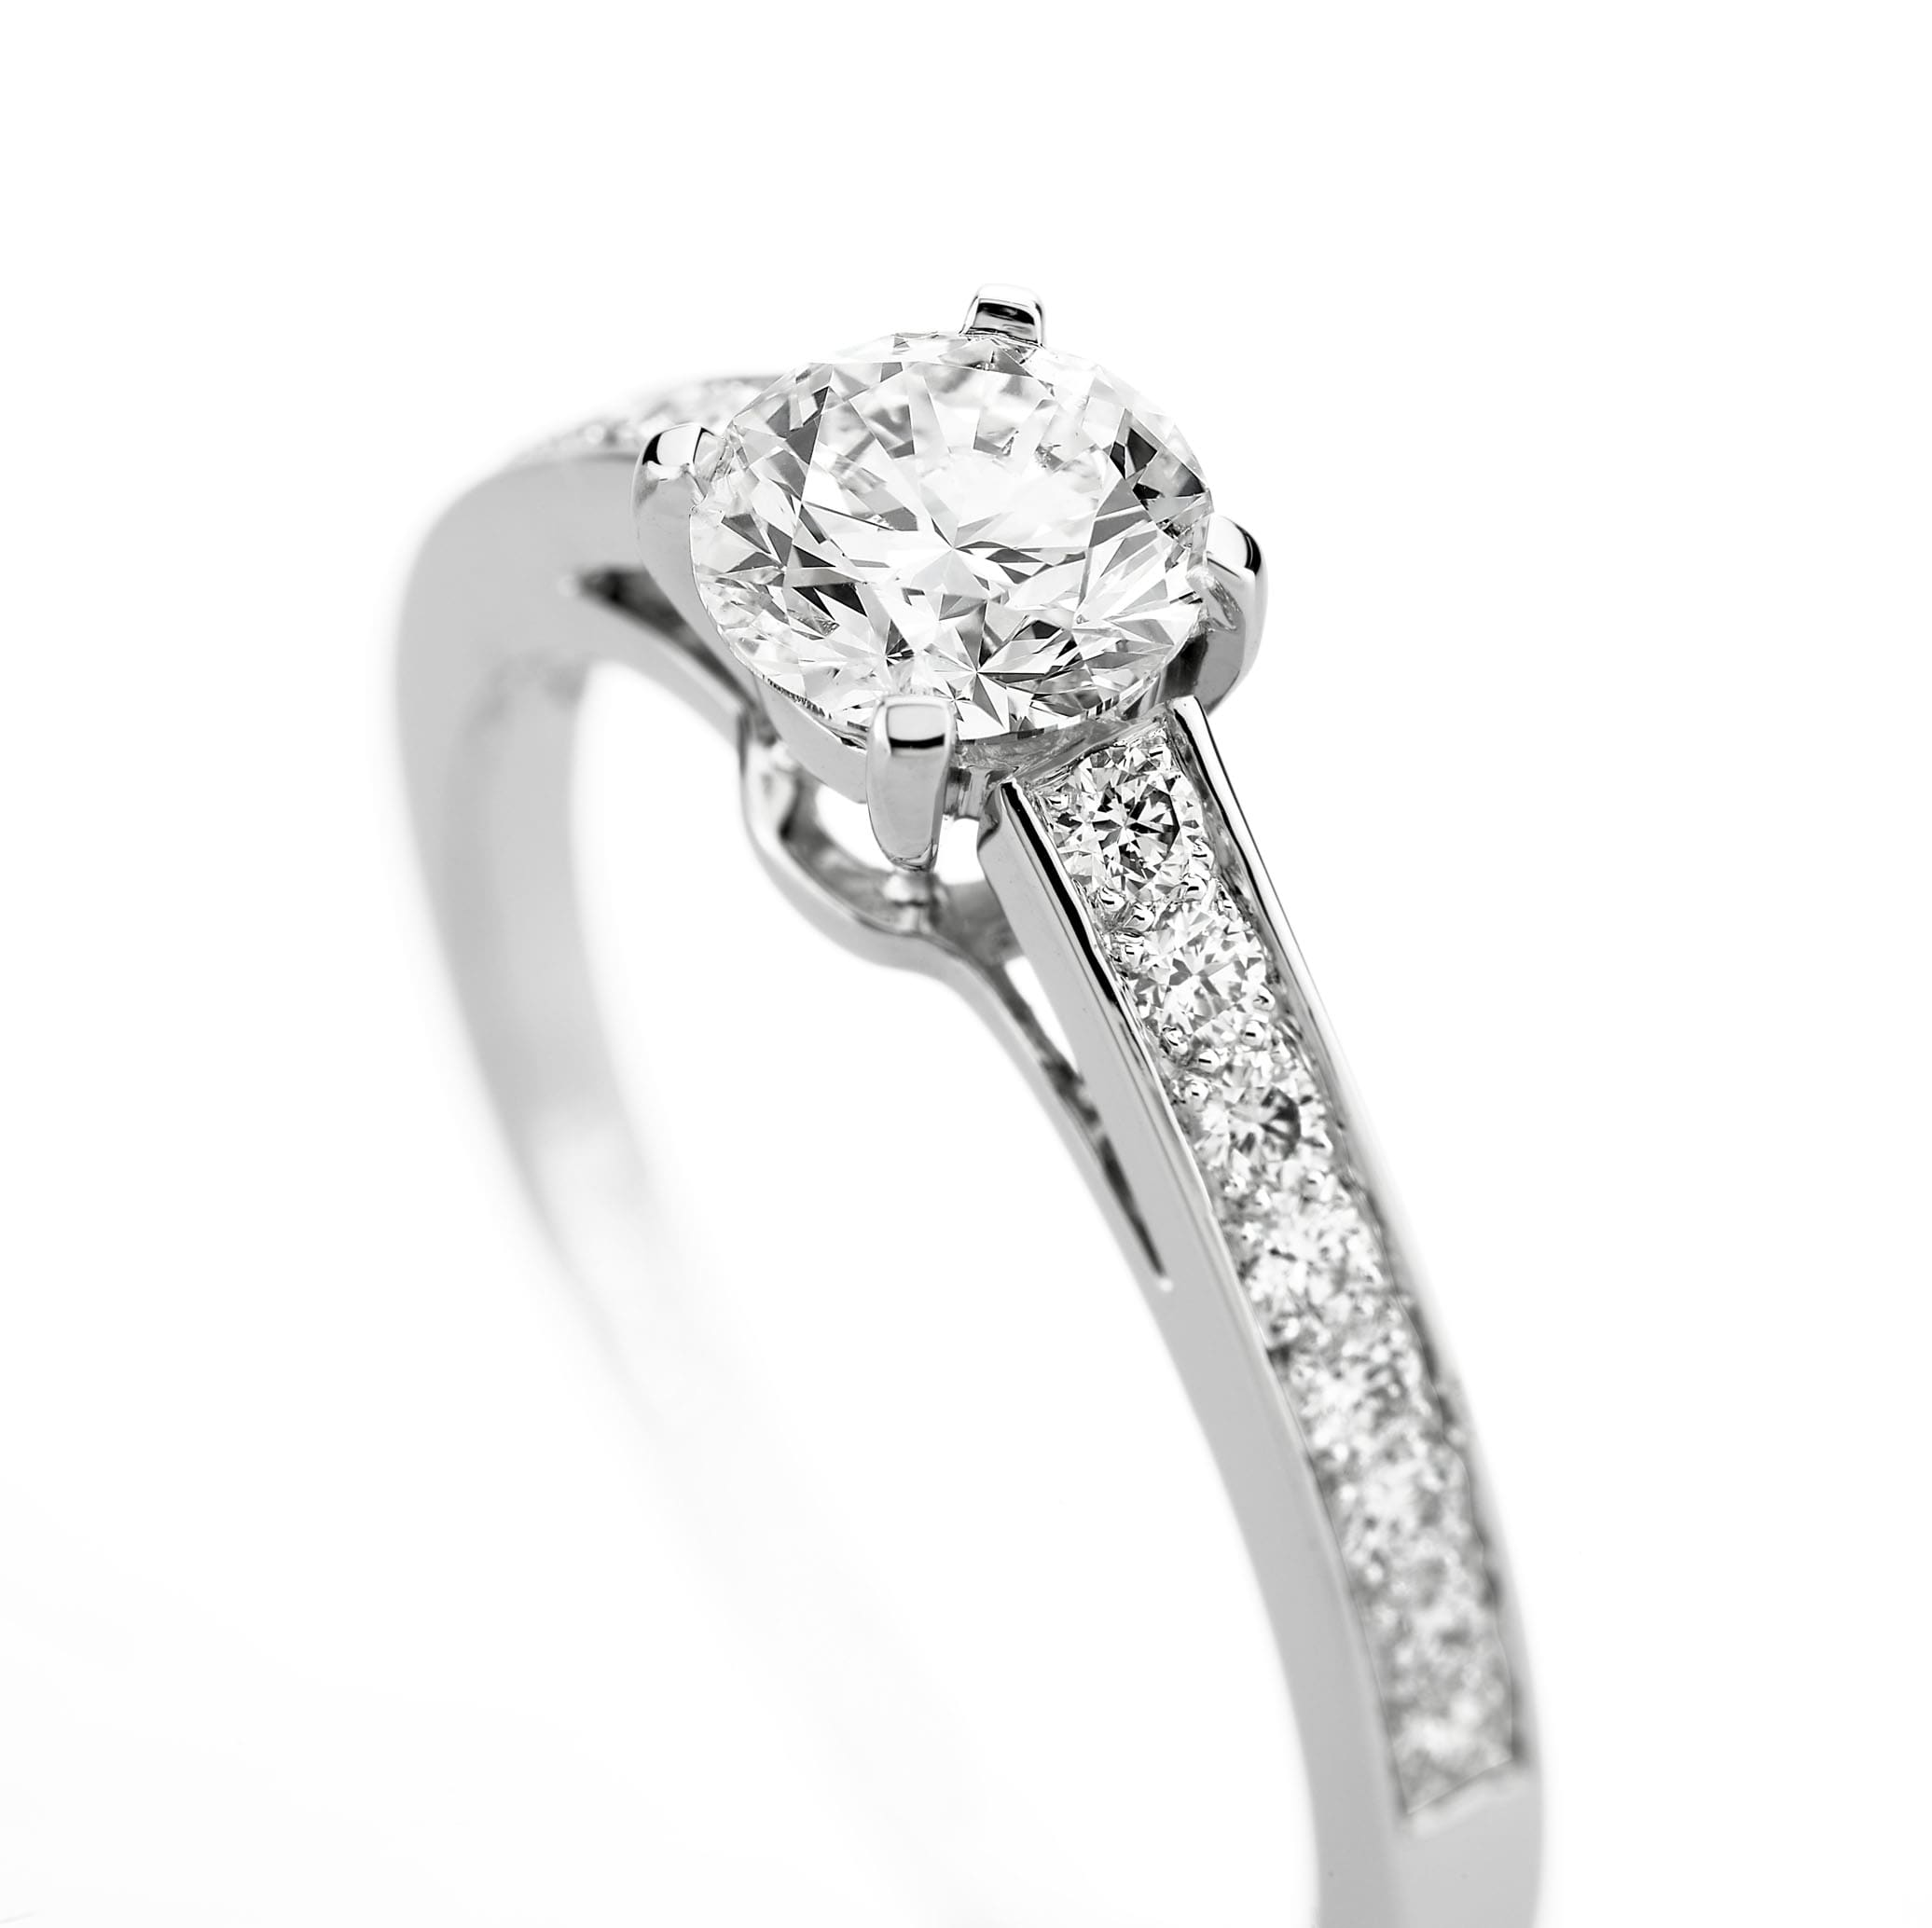 Diamond Engagement RIng paved with diamonds